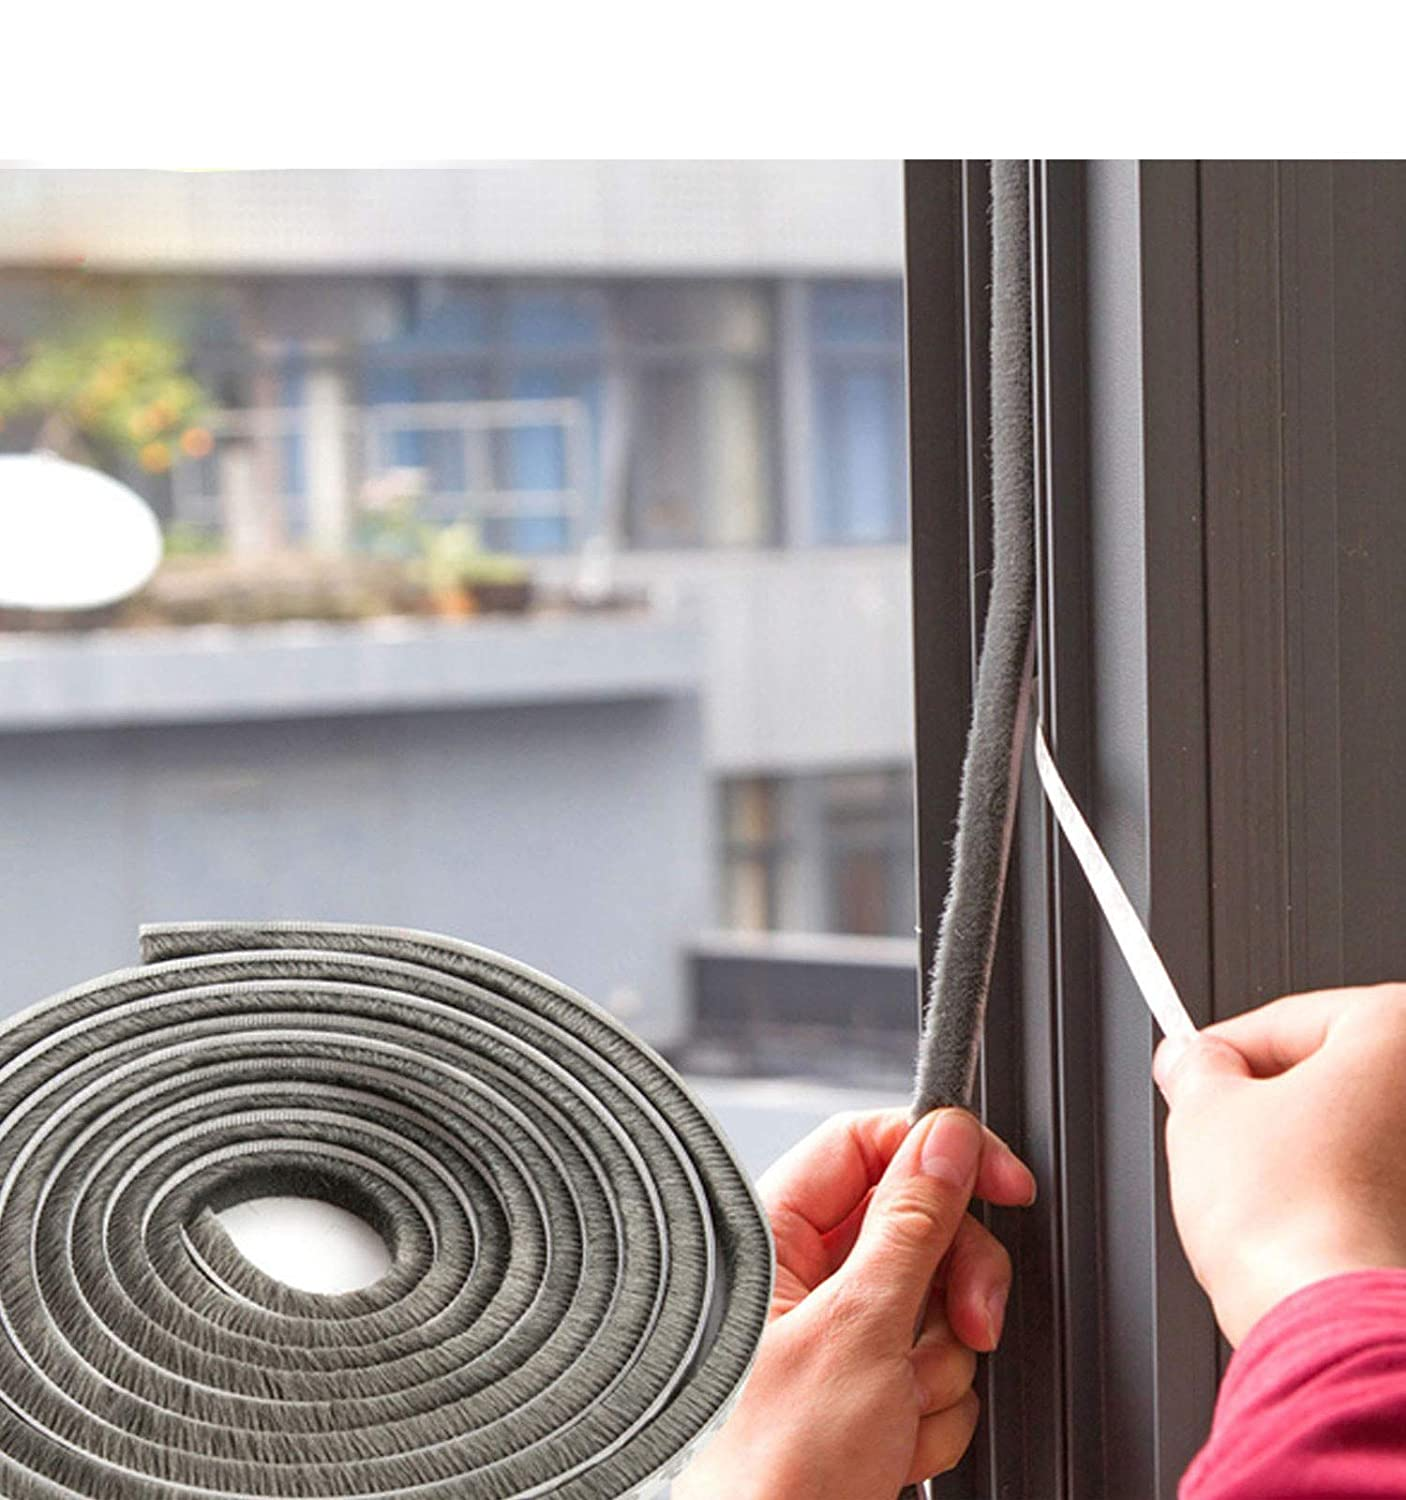 """SRHOME 32.8 ft Self Adhesive Seal Strip Weatherstrip for Window,Door,Wardrobe,Car,Perfect to Windproof Shelter from The Wind,Dustproof,Soundproof Sound Deadener (0.35"""" 0.2"""")"""